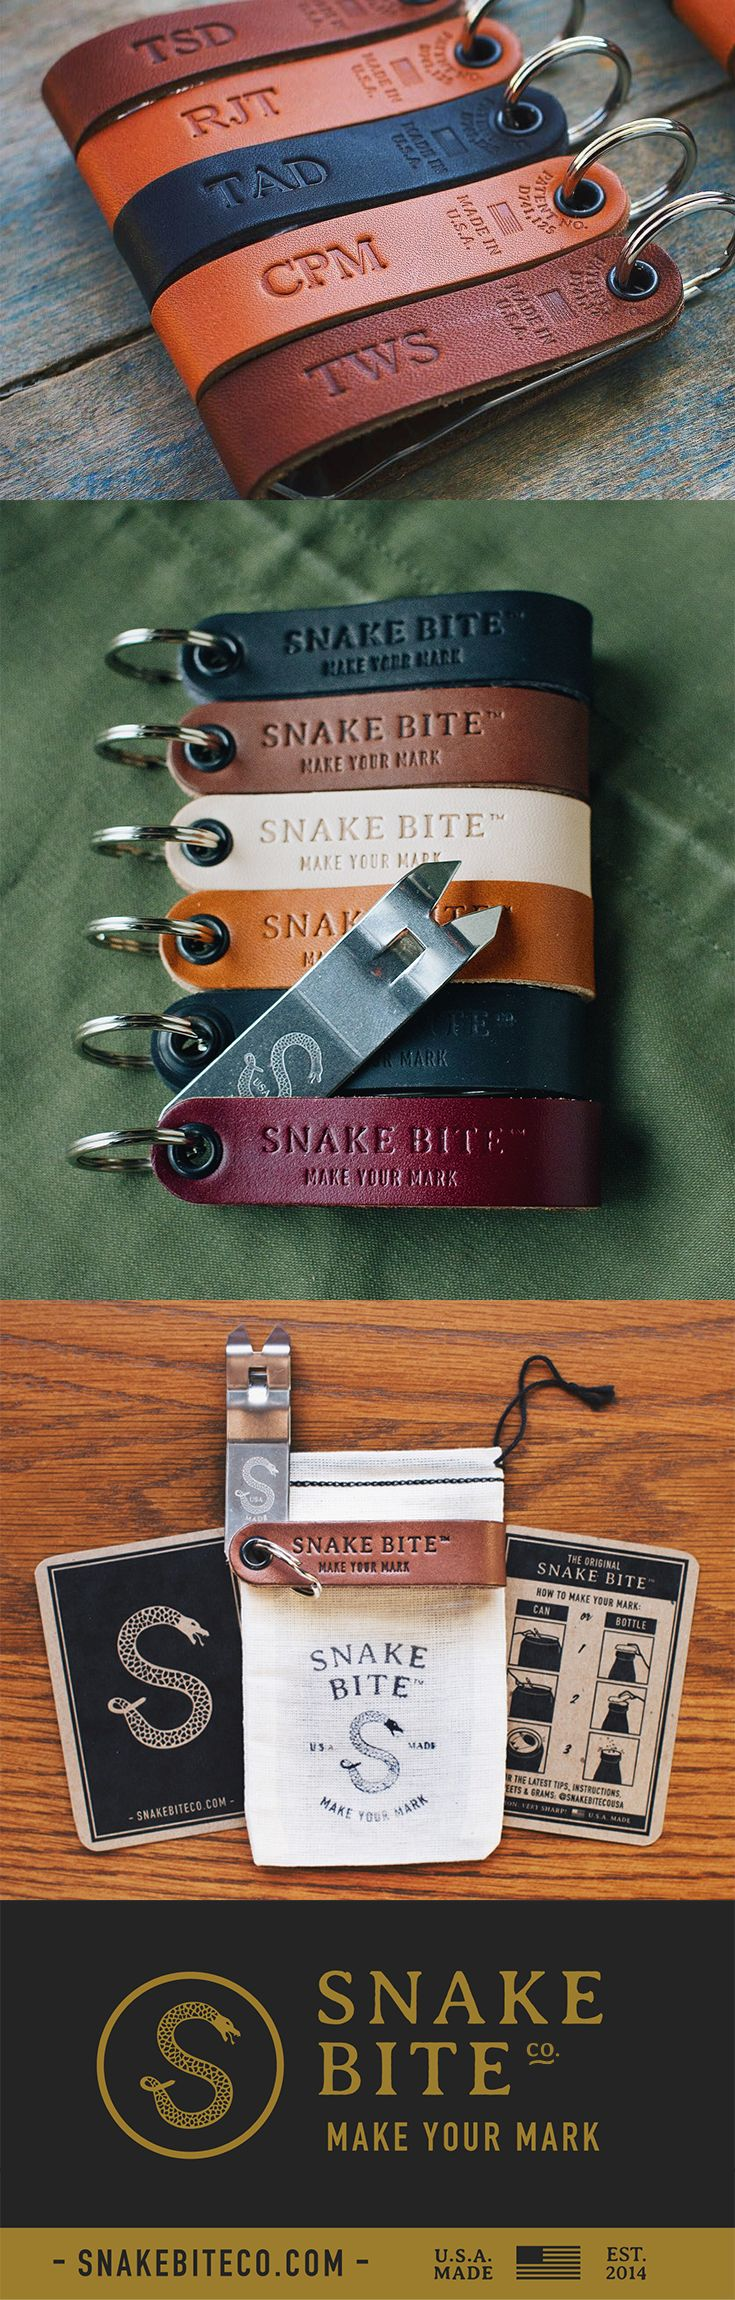 Your favorite church key bottle opener just got a little more personal. We now have the ability to personalize with up to four initials or numbers on the back of our Original Snake Bite leather. This customized extra step goes a long long way in showing your attention to detail. These custom bottle openers are perfect for wedding favors, bachelor party gifts, groomsmen gifts, and company gifts.  Free shipping and multi-unit discounts come standard!